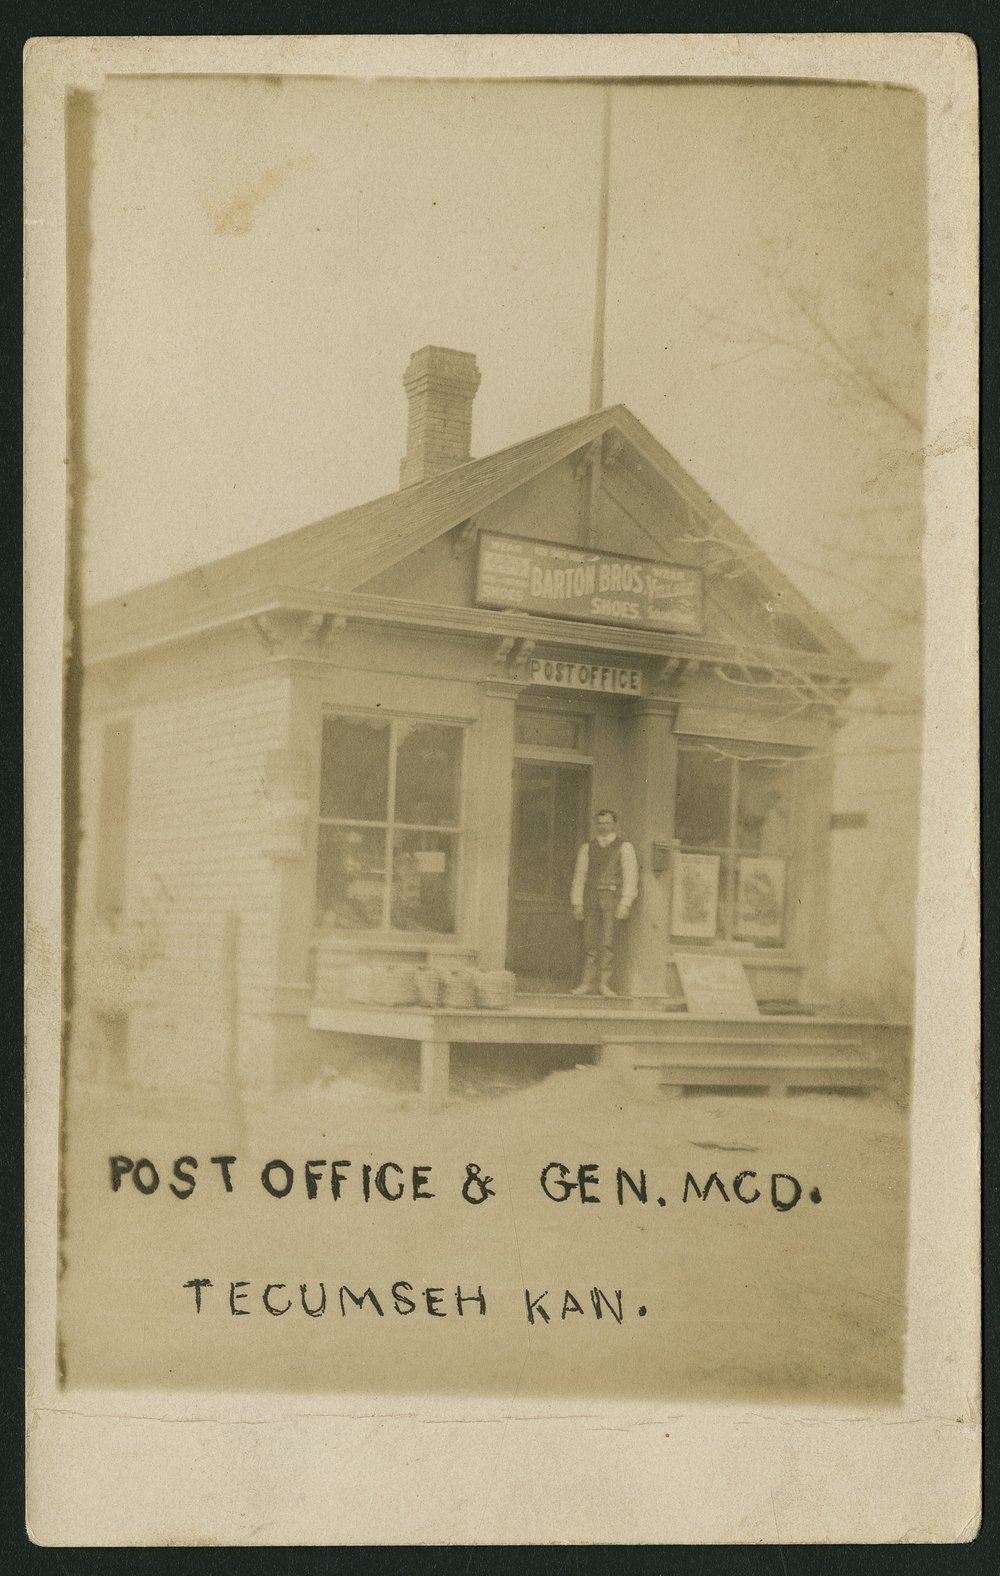 Bergman's general store and post office in Tecumseh, Kansas